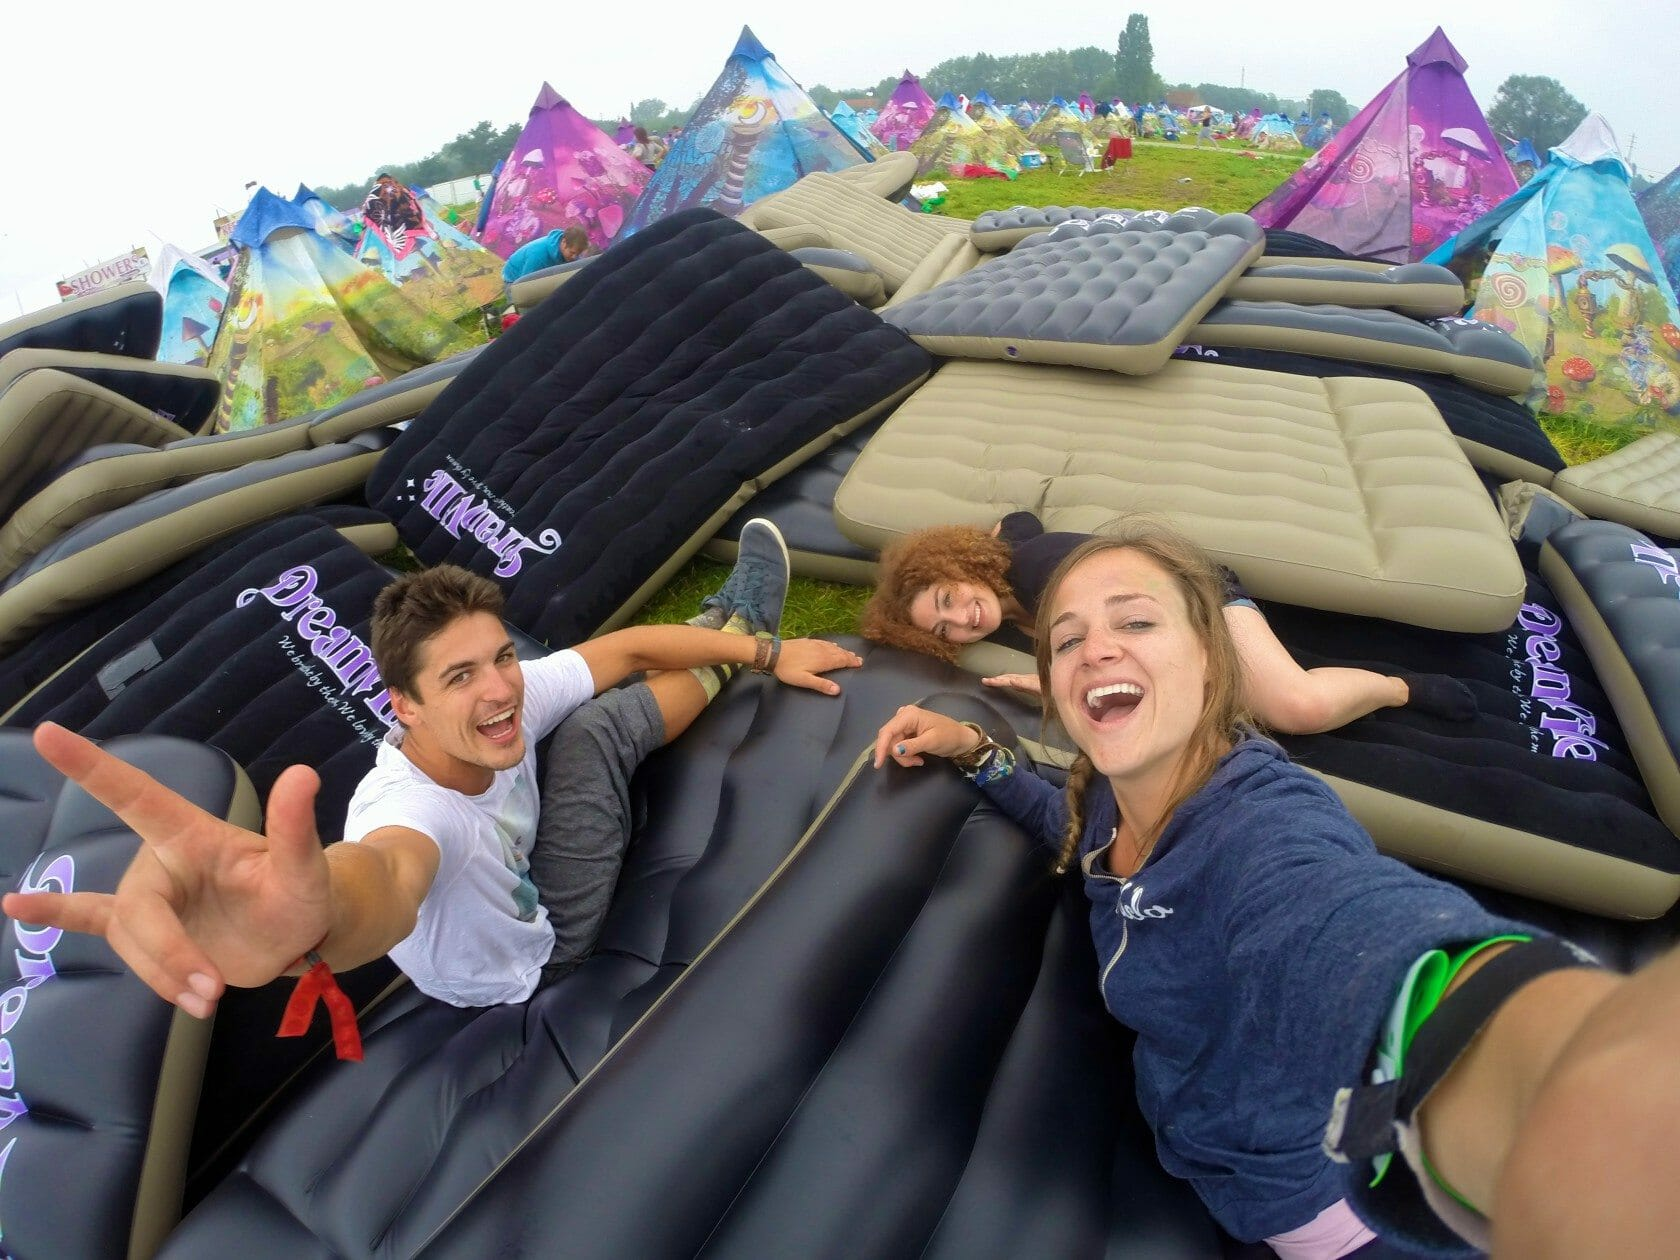 Tomorrowland Festival Review camping at music festivals